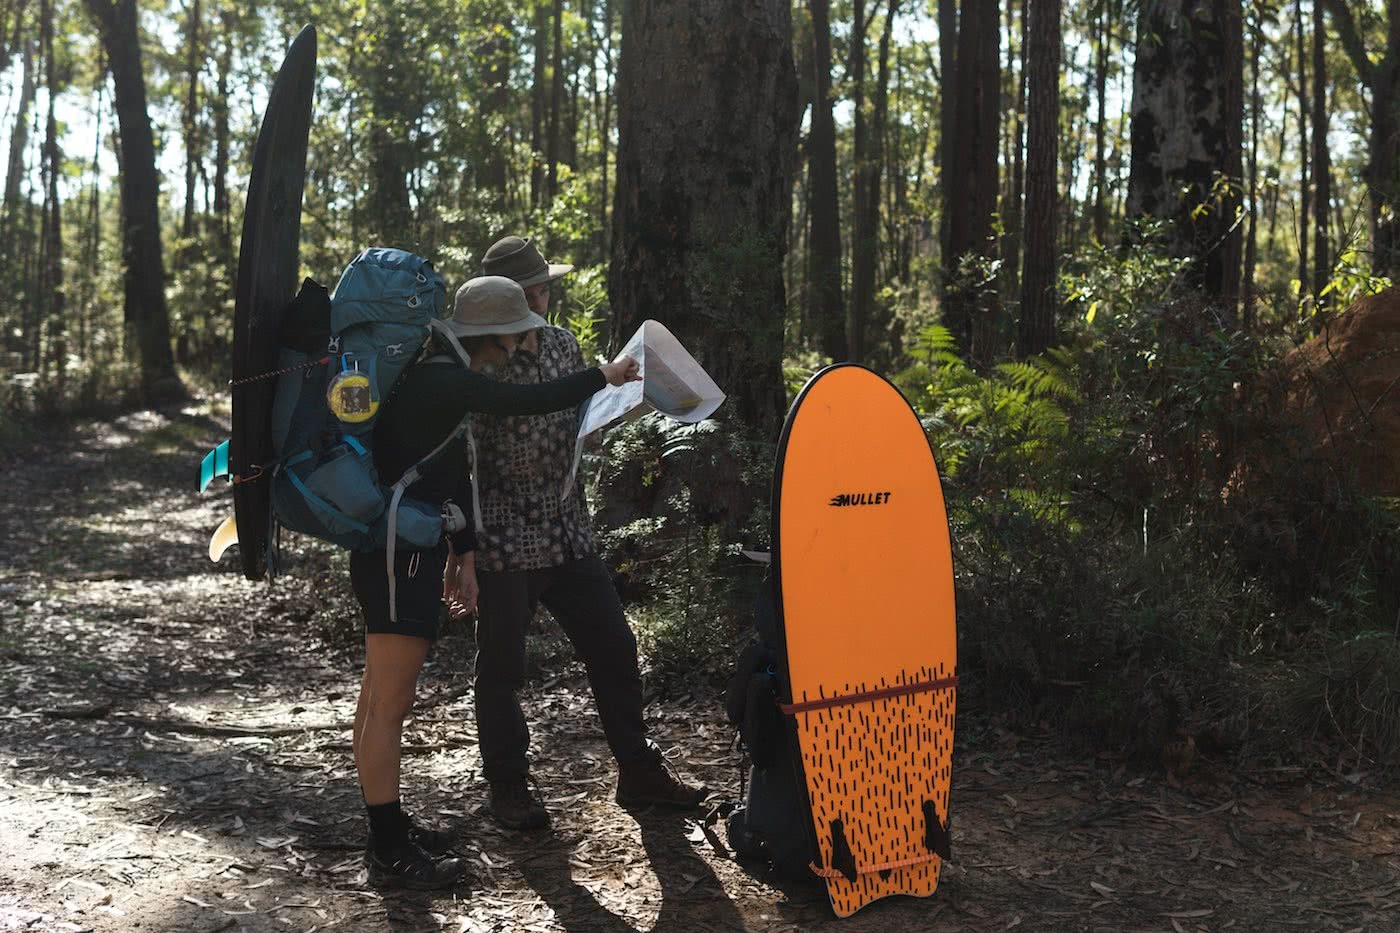 A Wilderness Surfari In Remote East Gippsland (VIC/NSW) by Jake, Sam and Georgia Doherty Osprey Adventure Grant, surf boards, backpacks and bushland, navigation, map reading